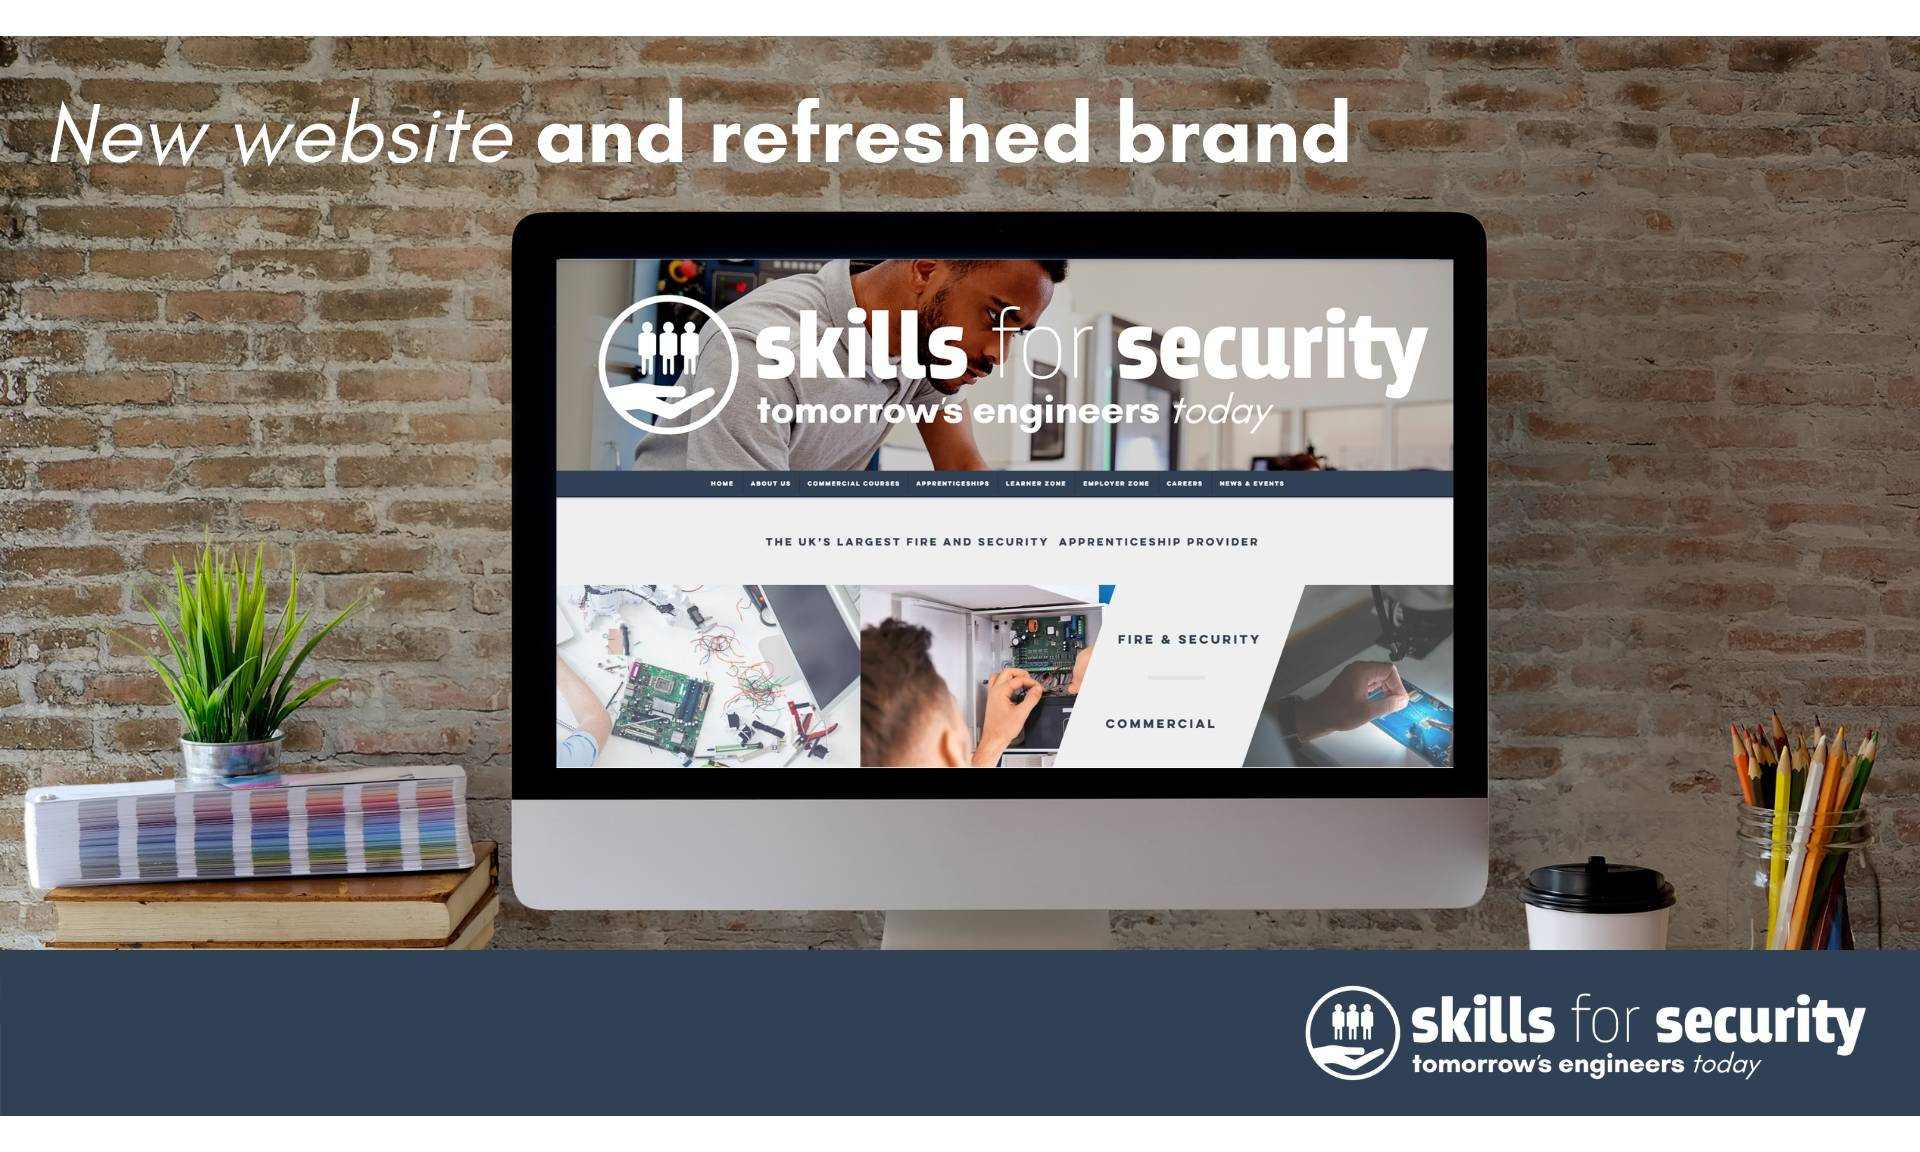 Skills for Security launch new improved website and refreshed brand identity